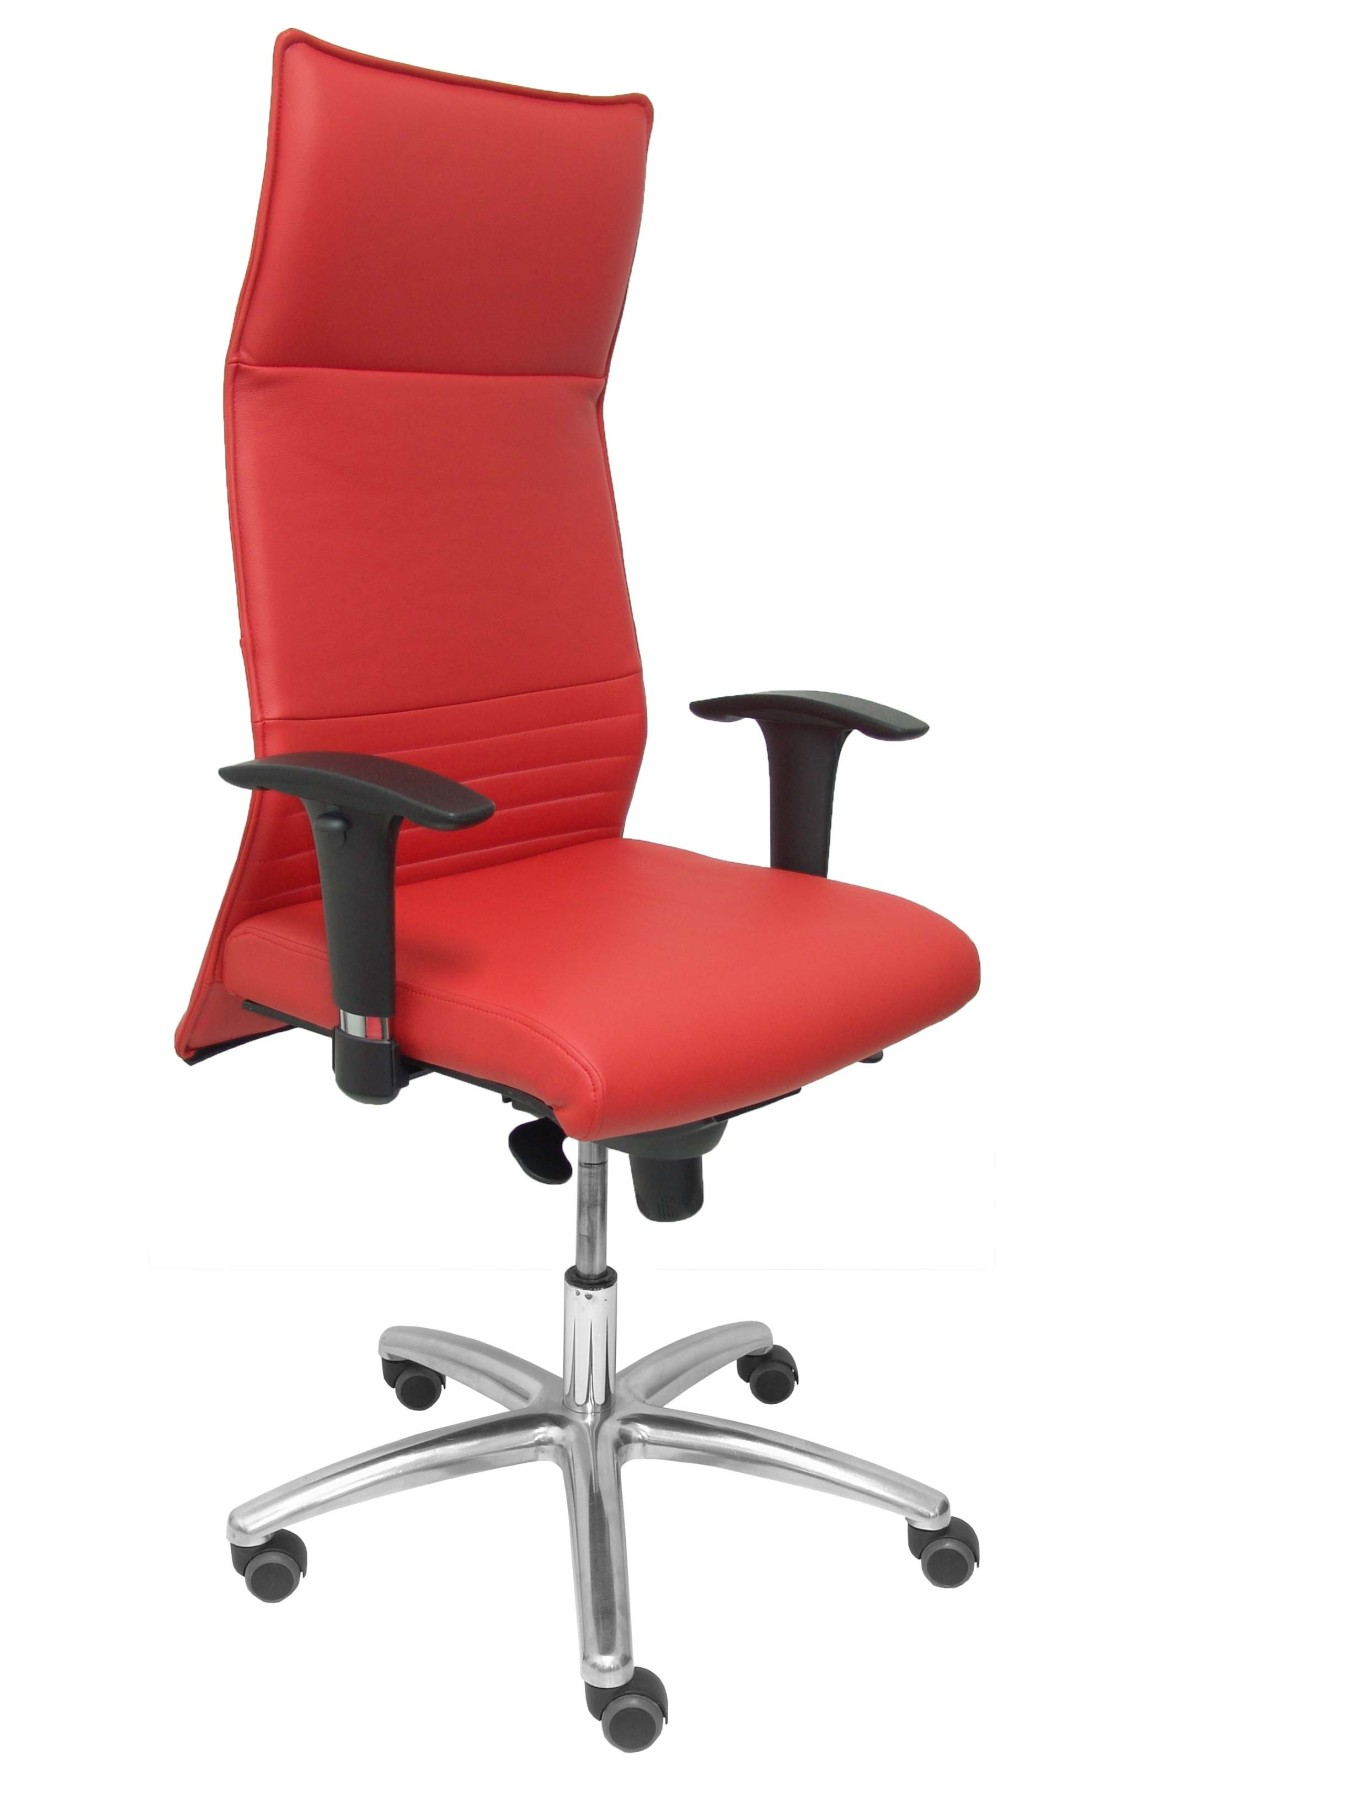 Chair Address Ergonomic With Mechanism Synchro And Adjustable Height-Seat And Backrest Cushion Leather Colo